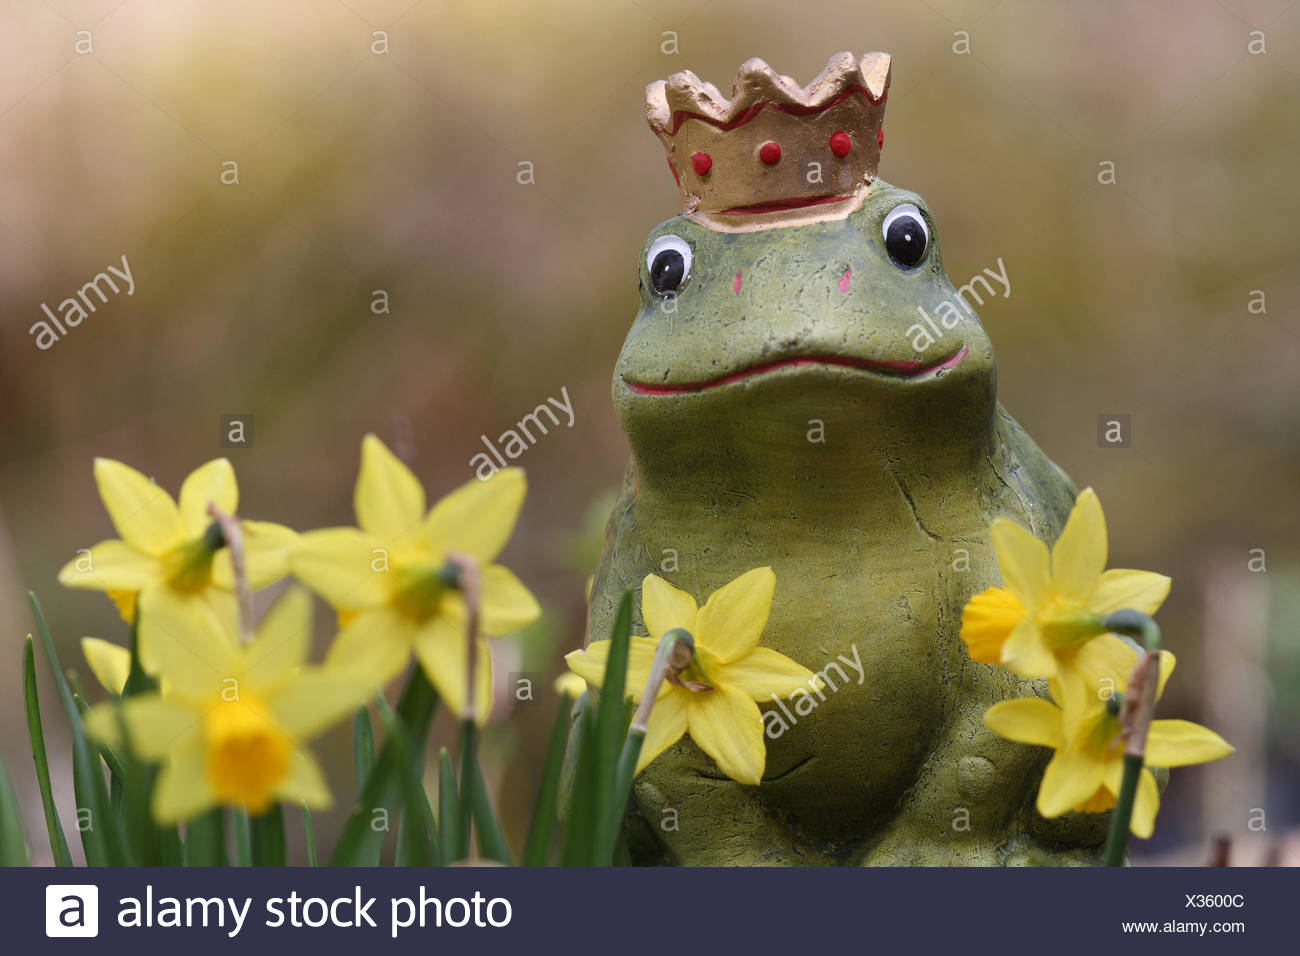 Garden figure, 'frog prince', daffodils, detail, flowers, garden, frog, figure, ceramics figure, crown, decoration, garden decoration, nicely, in of a kitschy way, spring, - Stock Image